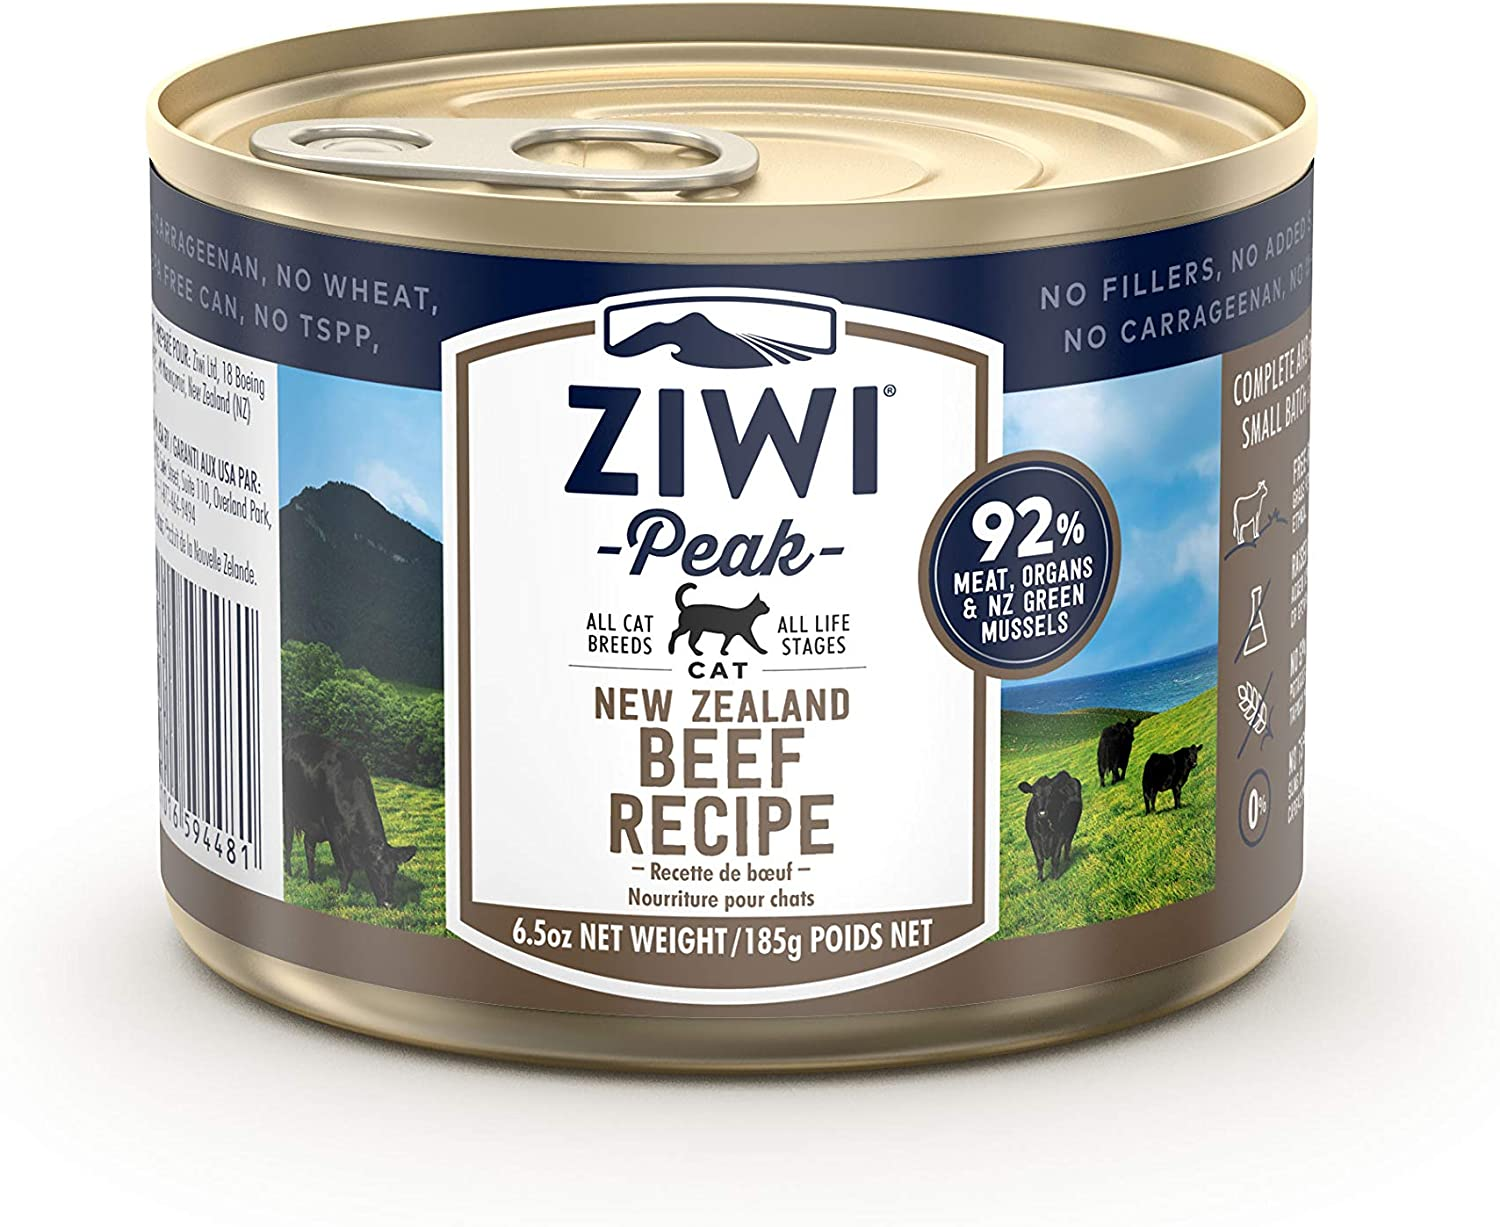 5. Ziwi-Peak Grain-Free Canned Cat Food Recipe